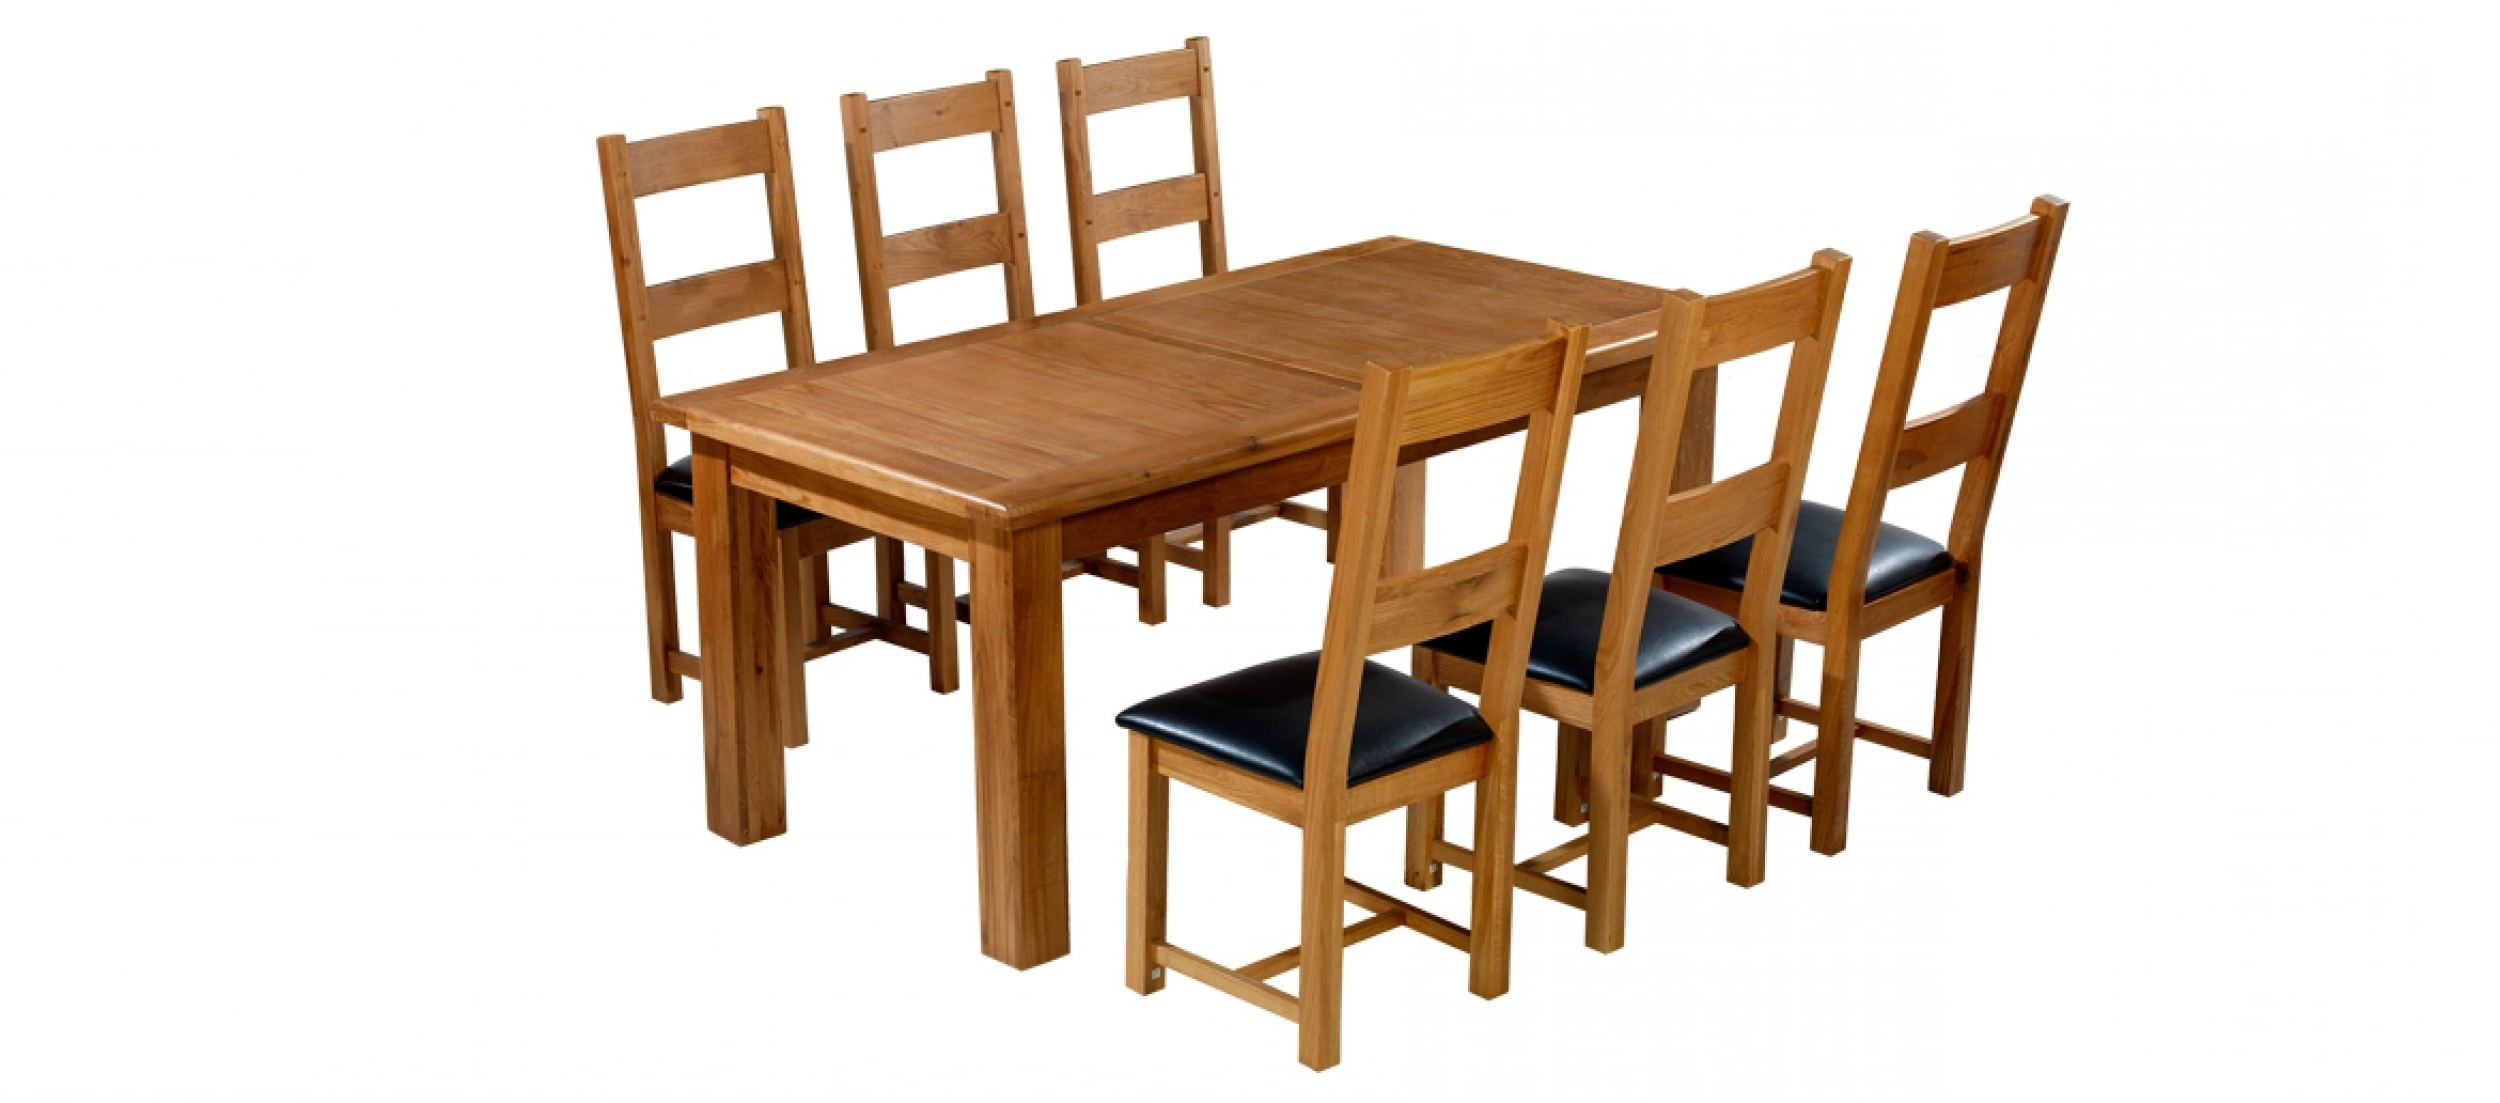 Extending Dining Tables With 6 Chairs Within 2018 Barham Oak 180 250 Cm Extending Dining Table And 6 Chairs (View 5 of 25)